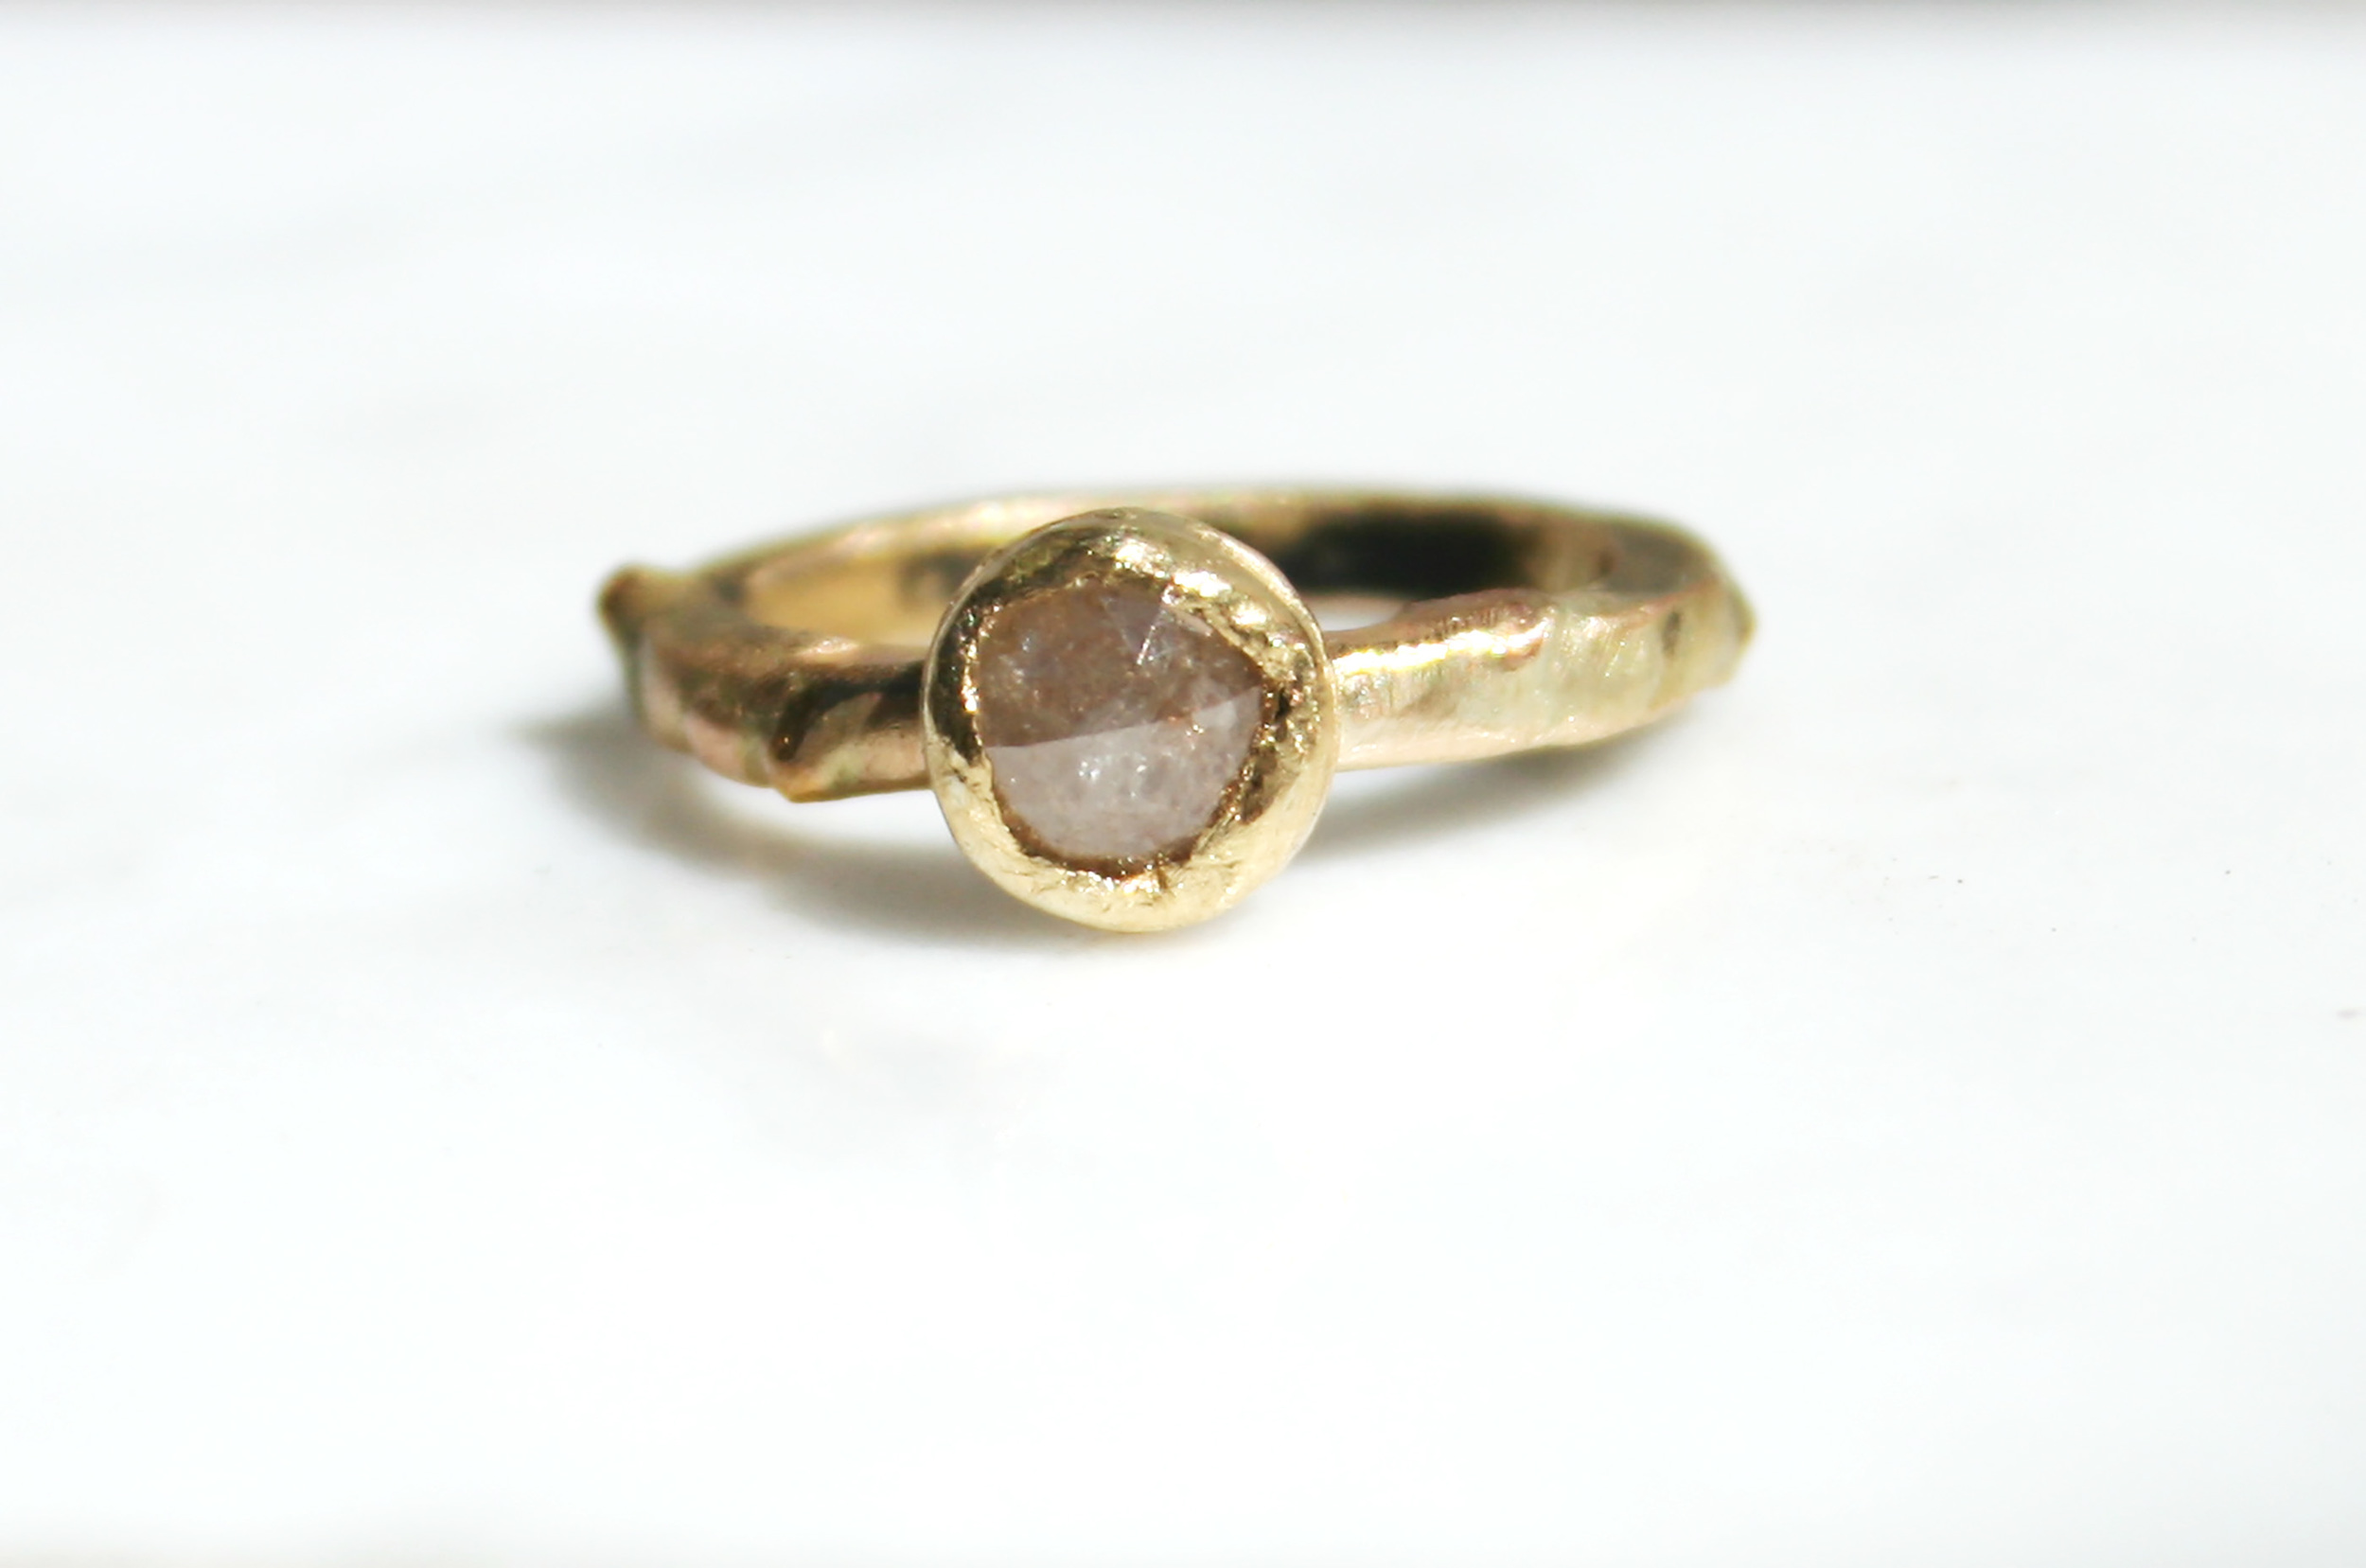 Ethical Sourcing - We buy all recycled gold that is manufactured in the United States.Our diamonds have been purchased from legitimate sources, not involved in funding conflict. Sometimes we buy reclaimed diamonds, meaning they were taken from older existing rings. Mostly, we will not know the history of these diamonds.